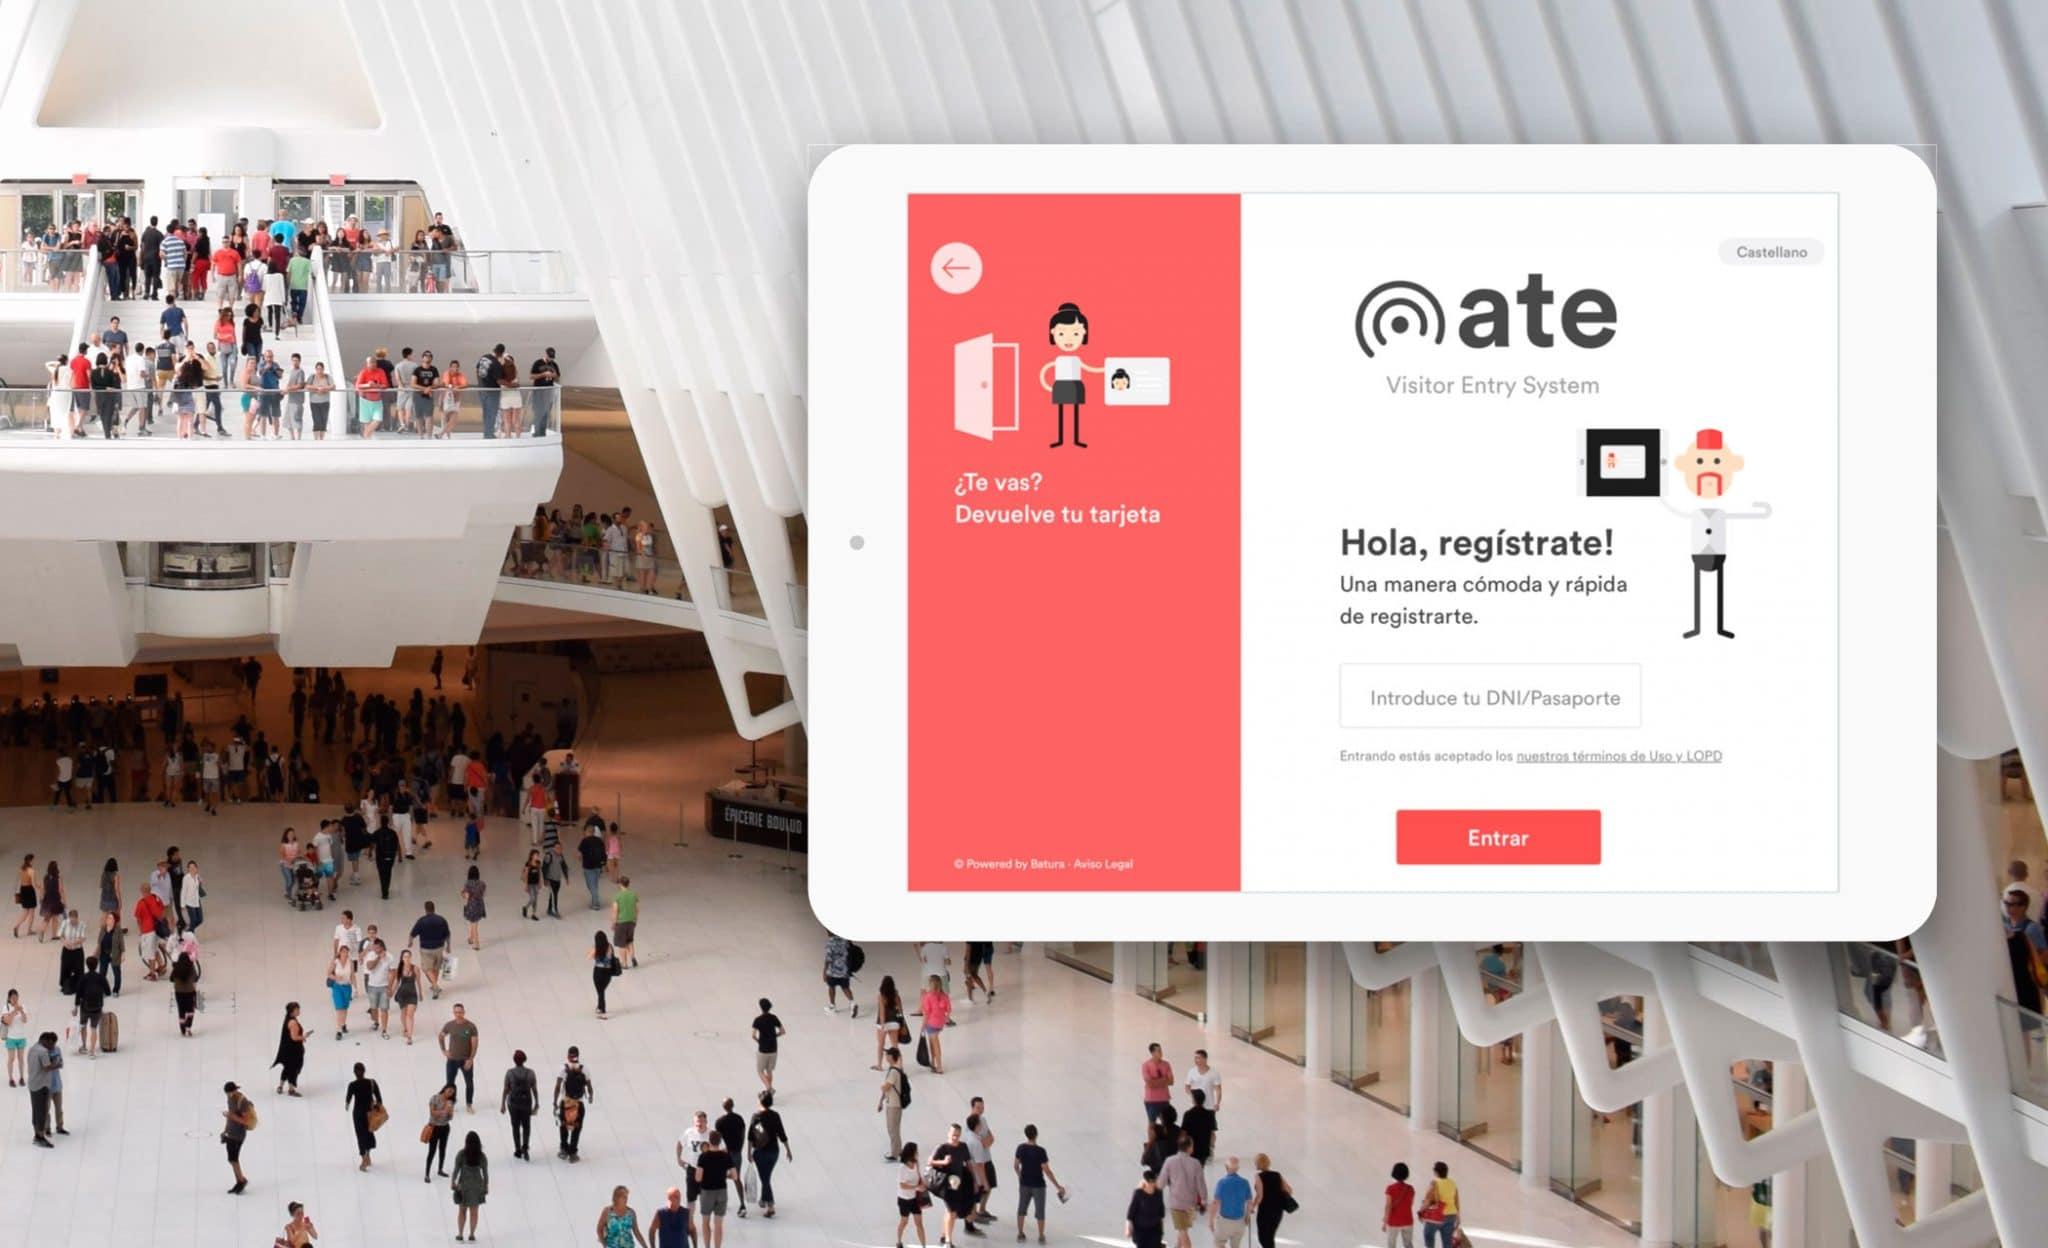 ATE — Visitor Entry System